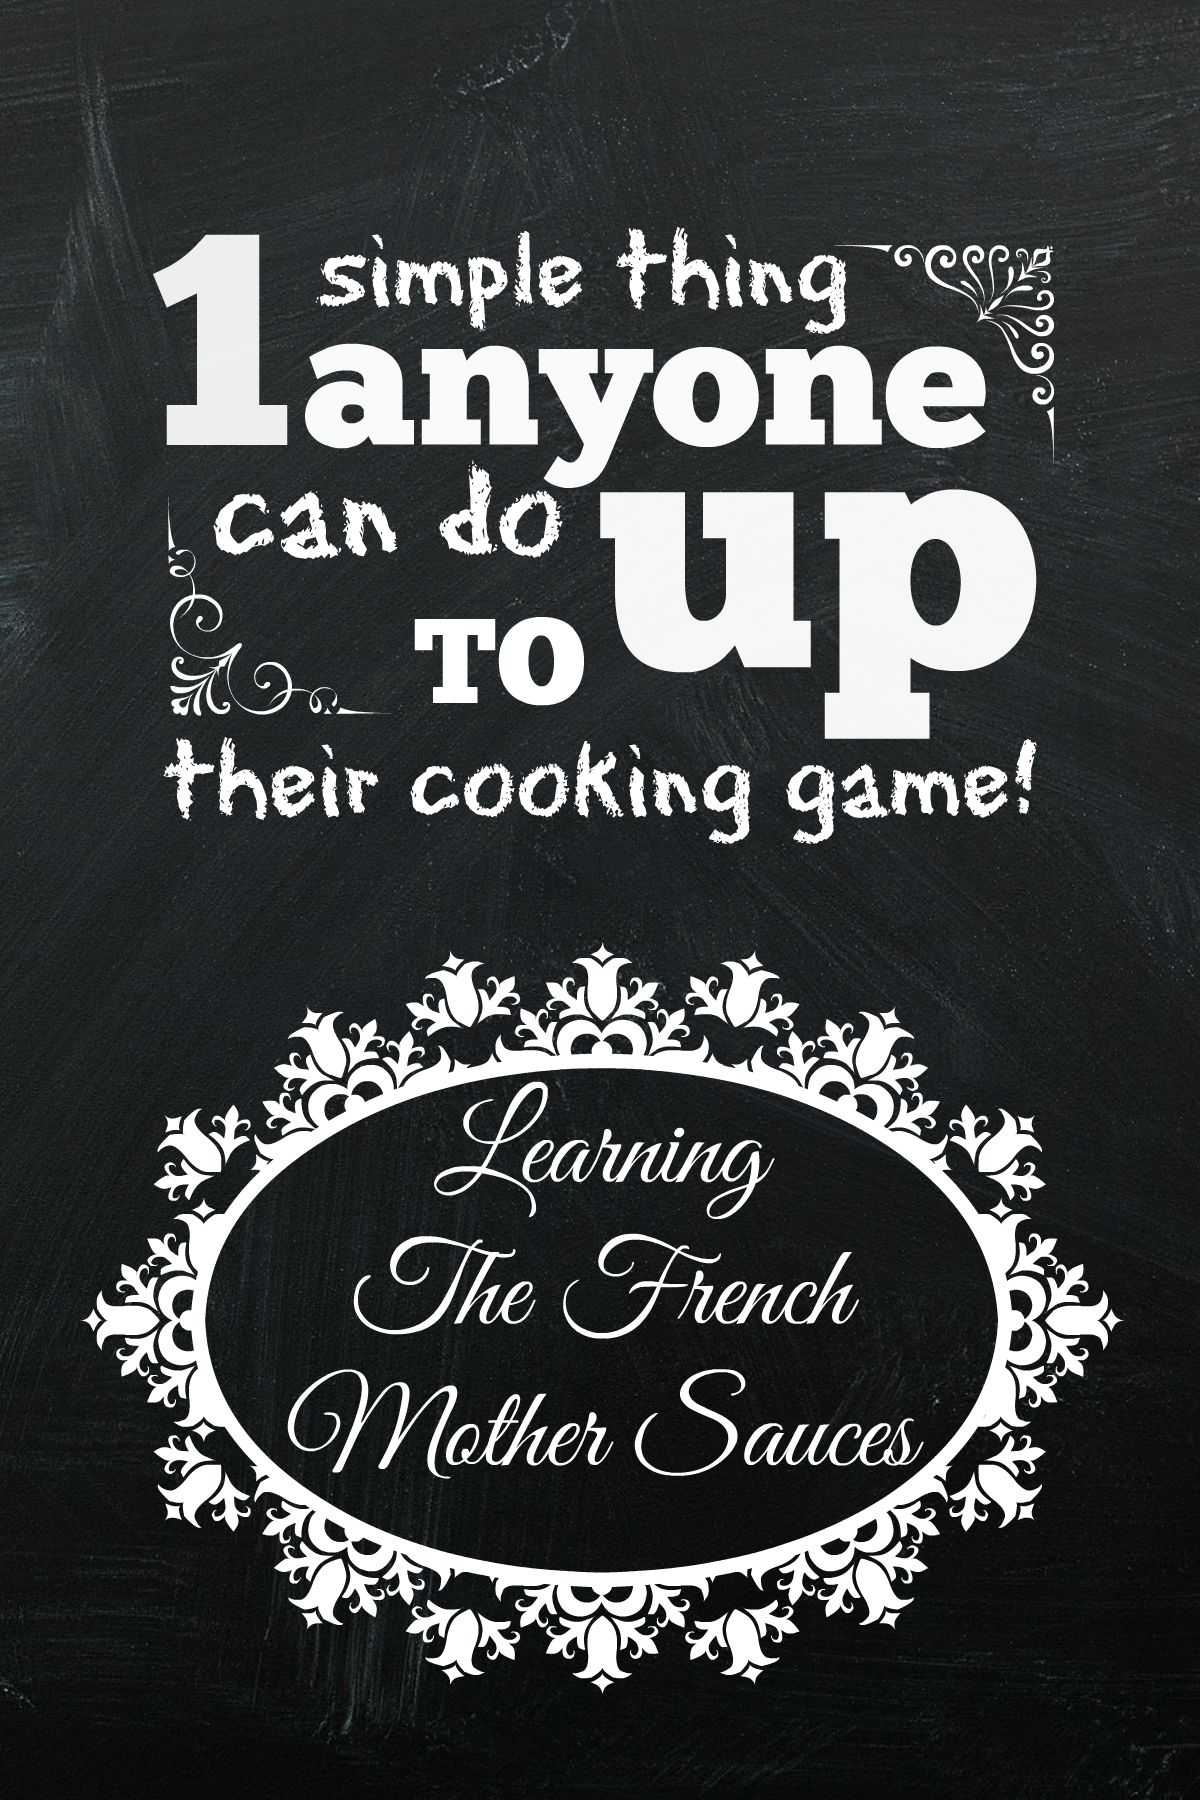 One simple thing anyone can do to up their cooking game – learning the French Mother Sauces